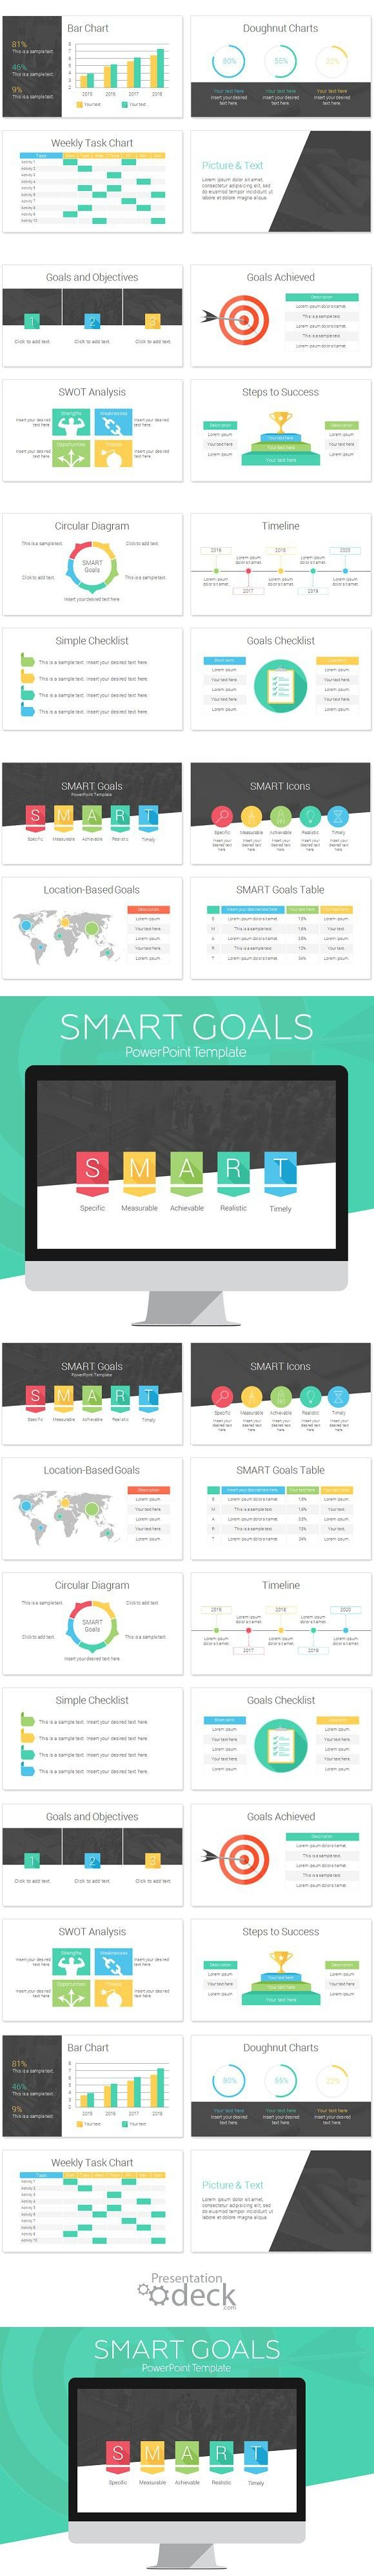 Smart Goals Powerpoint Infographic Powerpoint Templates